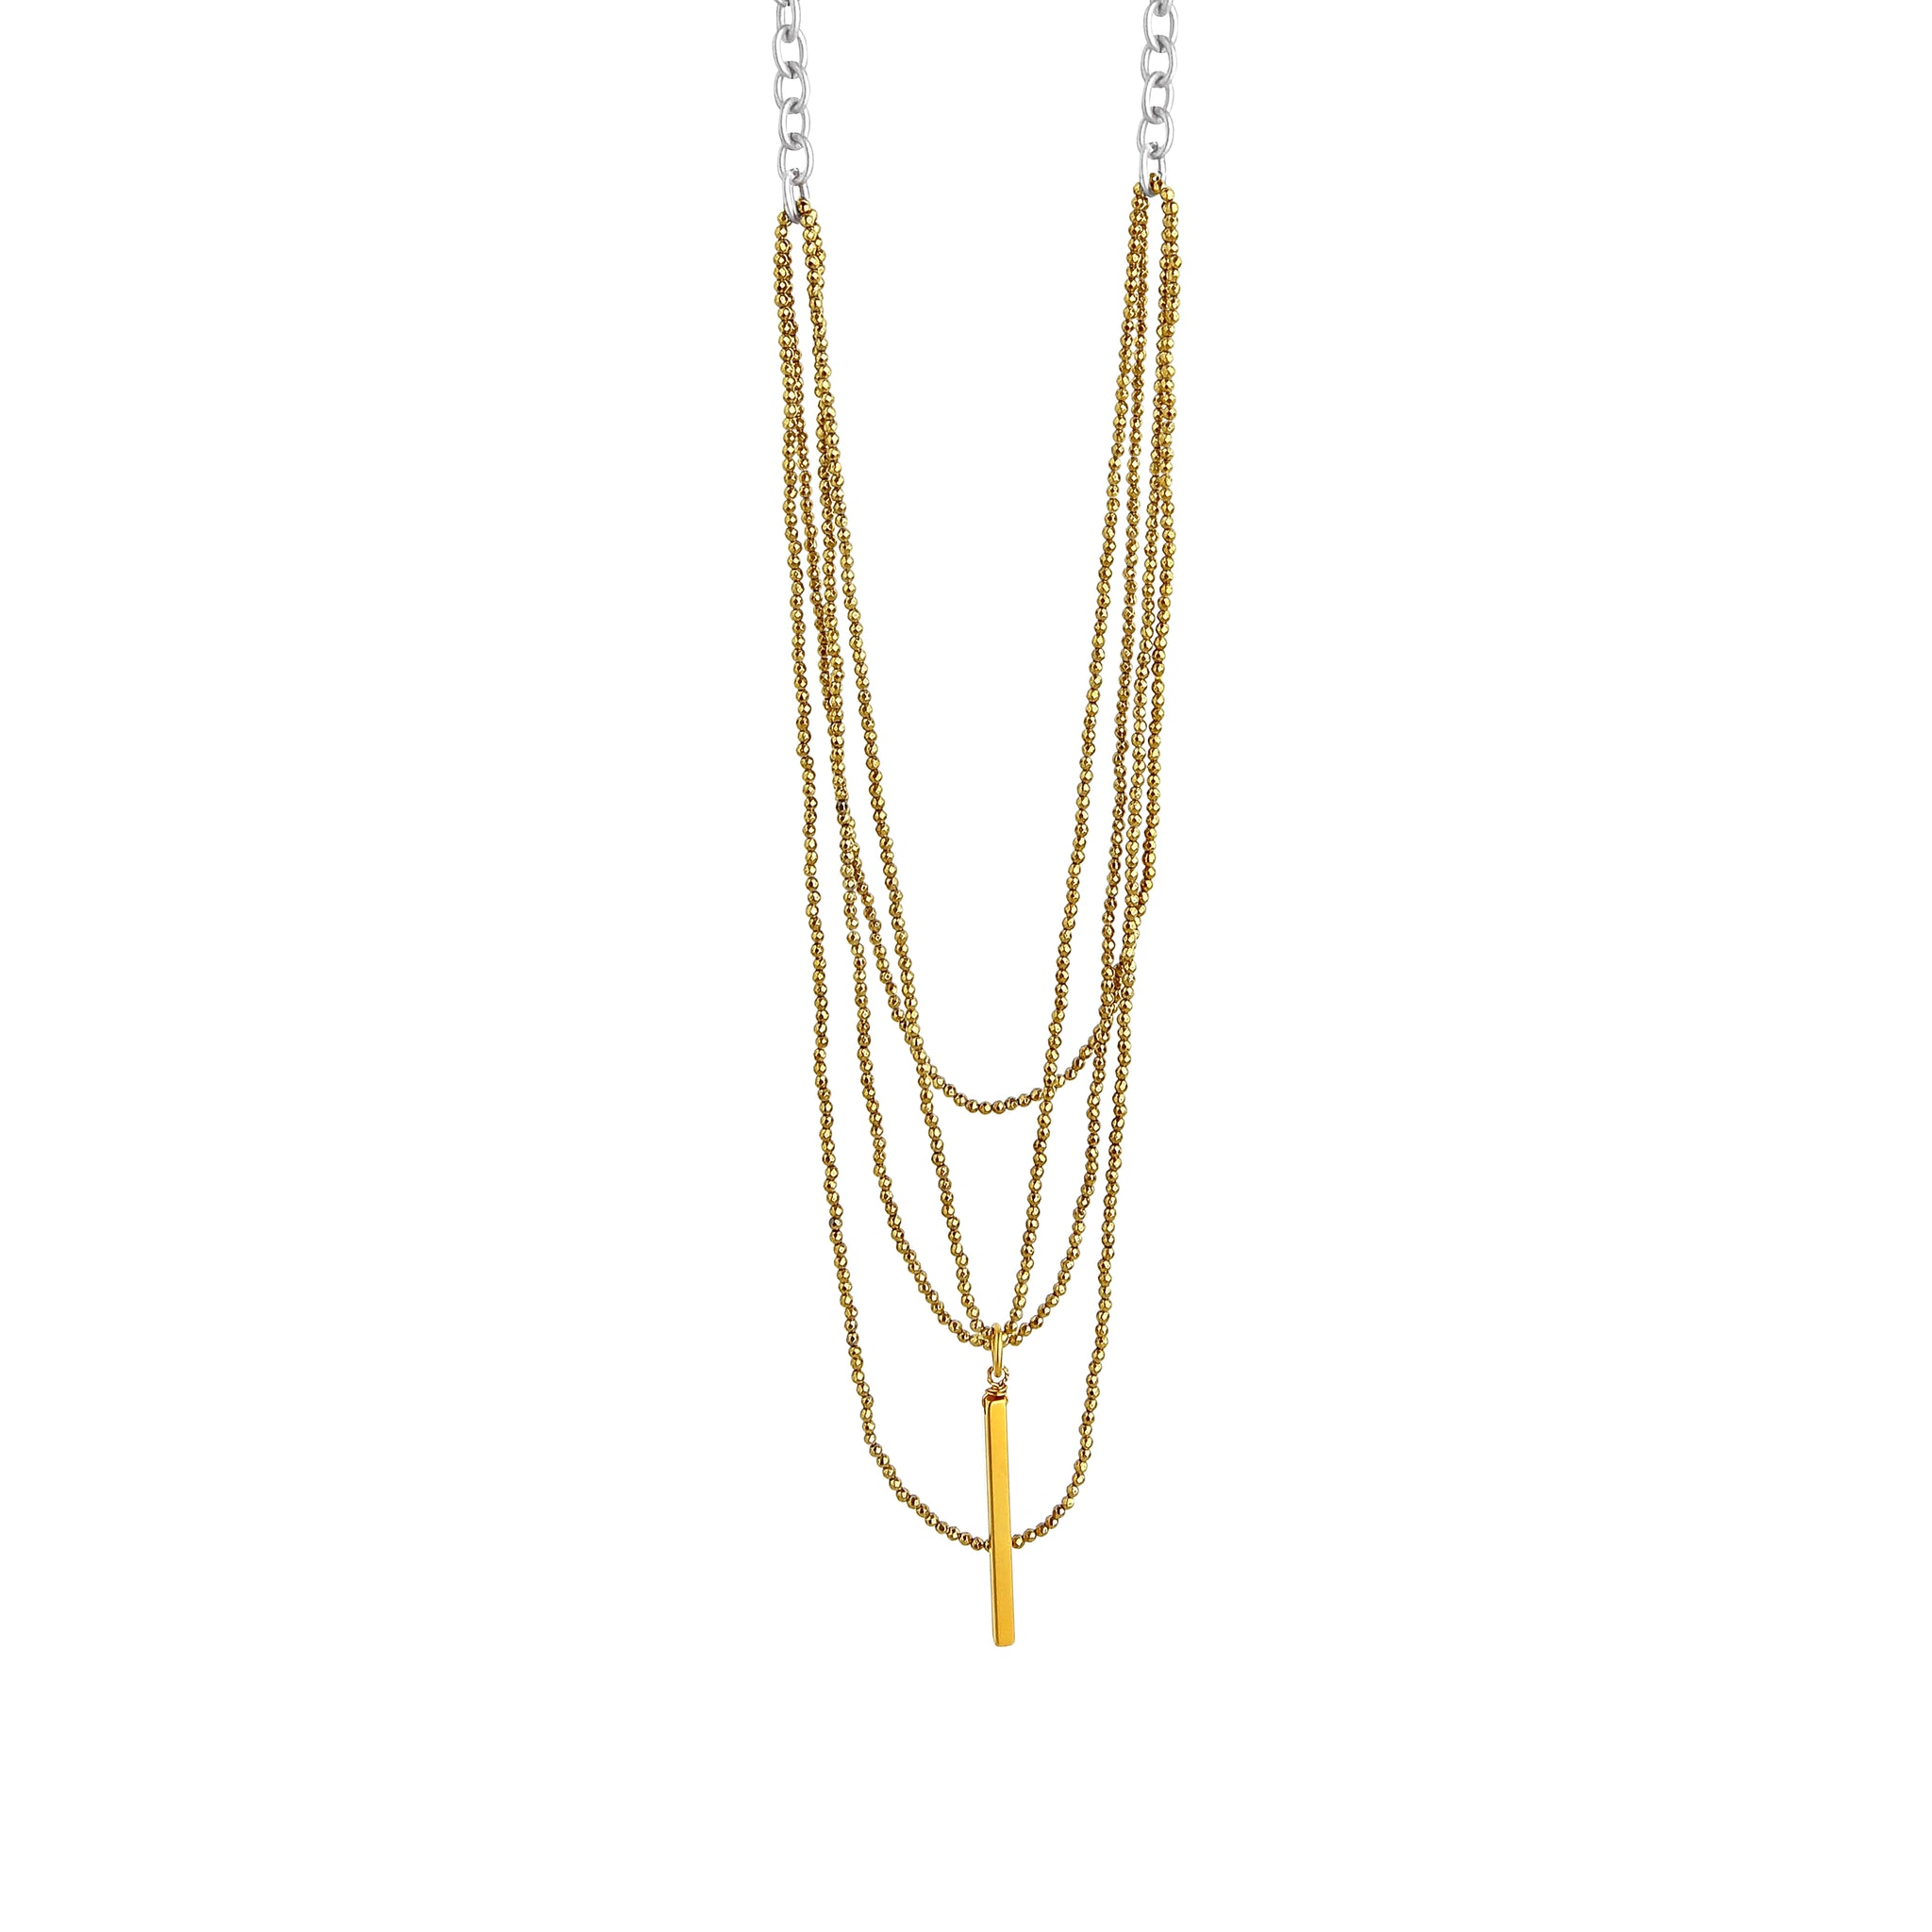 Everly Long Multi Strand Necklace